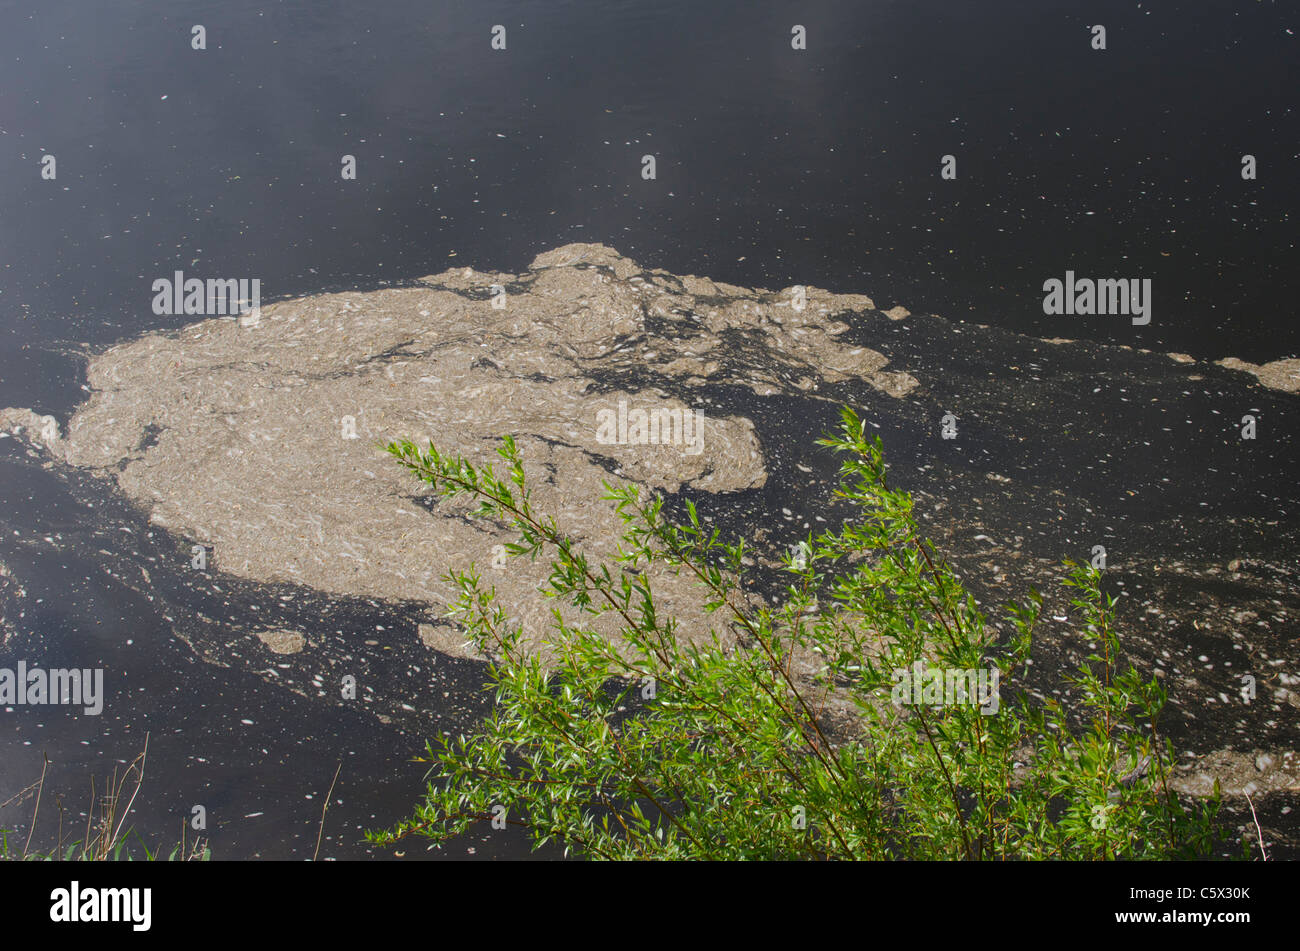 Scum and debris floating on the surface of a river - Stock Image